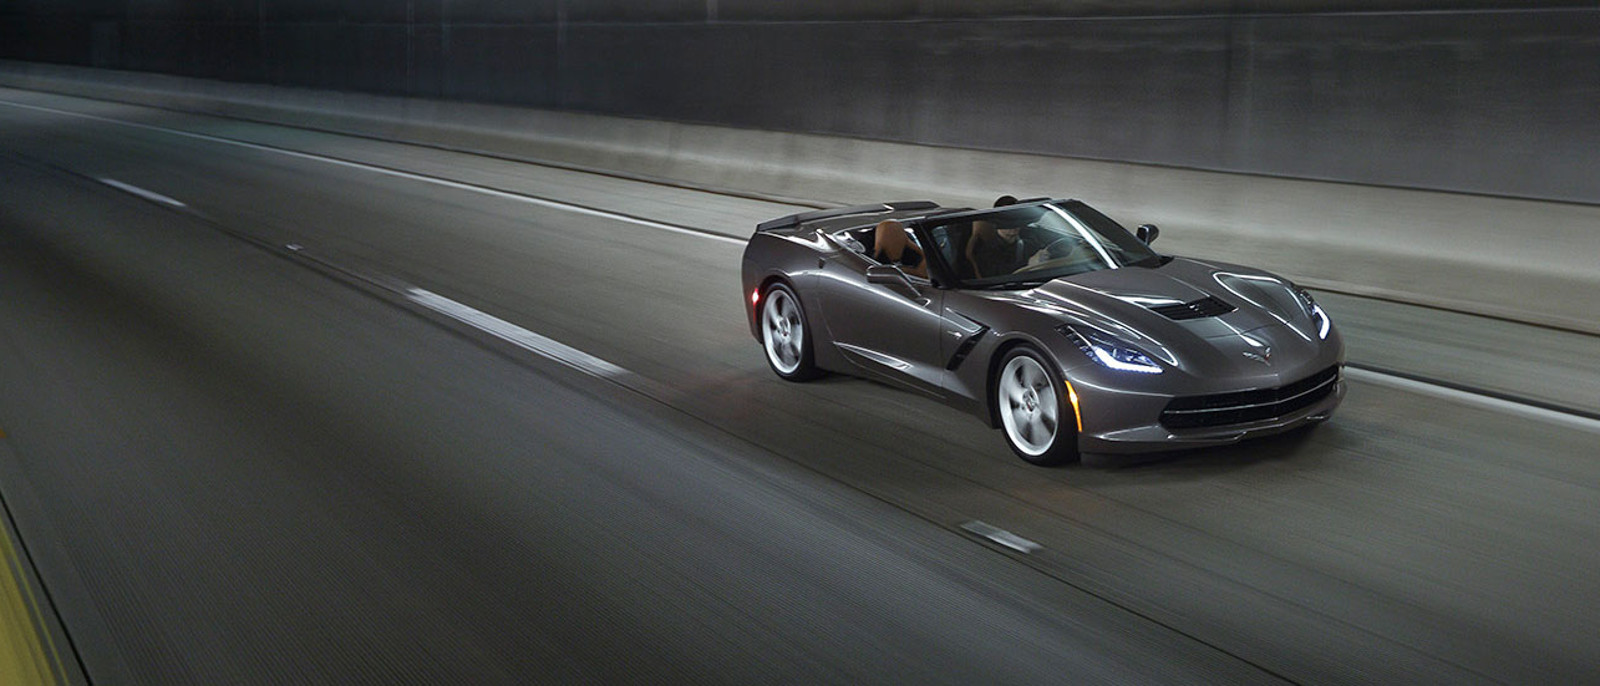 Chevy Dealers Tampa >> Pre Order Corvette 2014 Tampa Fl | Autos Post